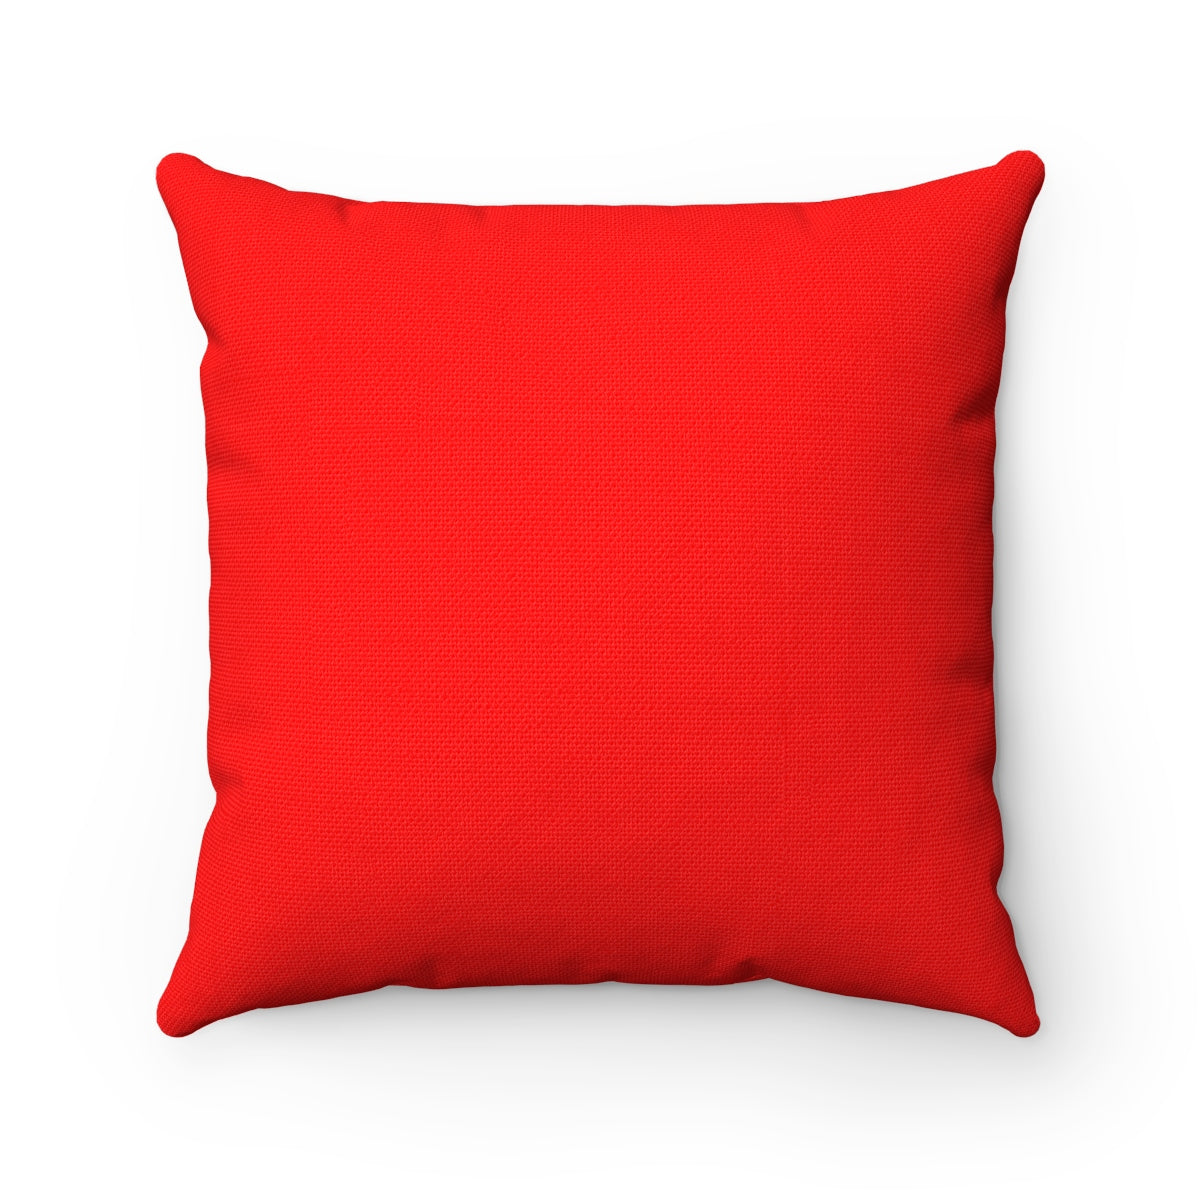 Tent Life Pillow: Red